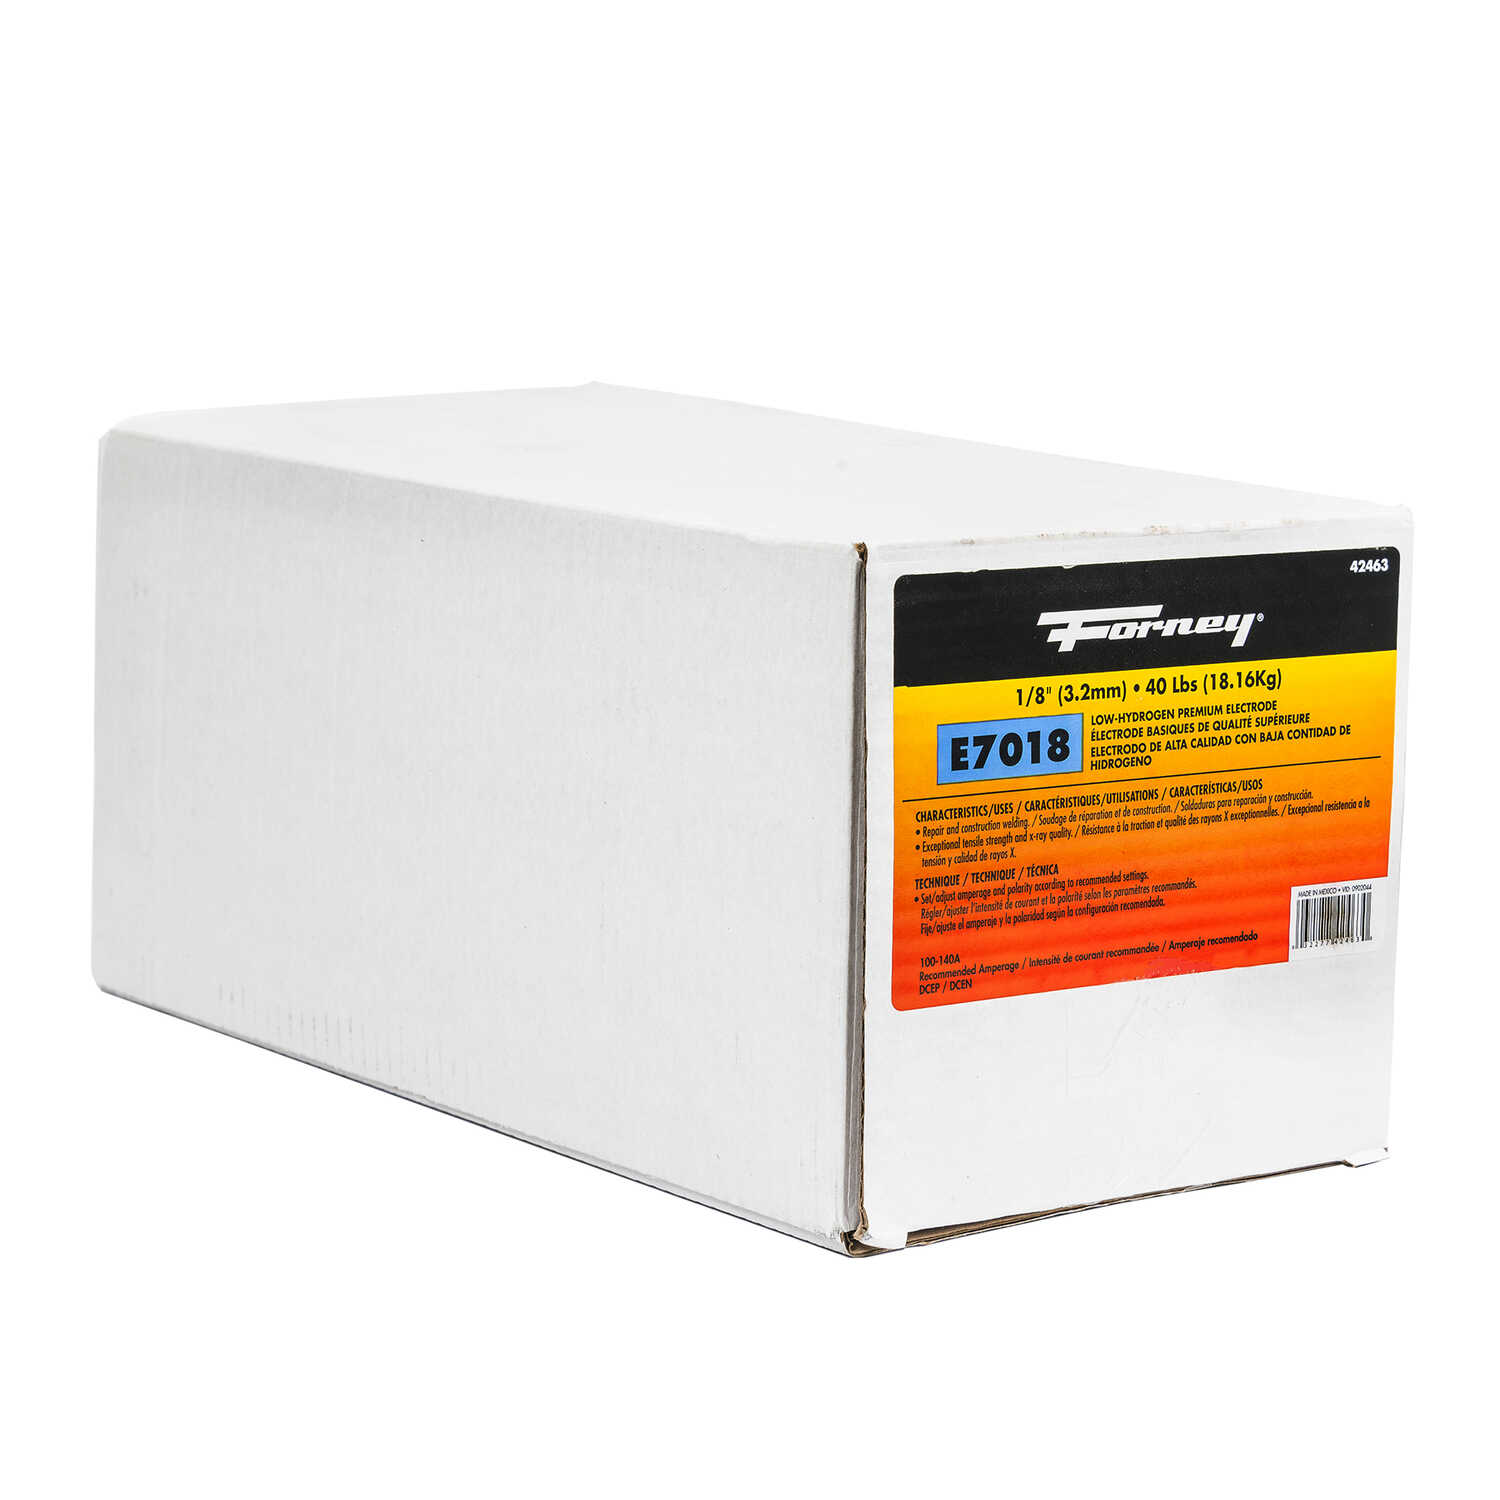 Forney  1/8 in. Dia. x 15 in. L E7018  Mild Steel  Low-Hydrogen Welding Electrodes  84000 psi 40 lb.